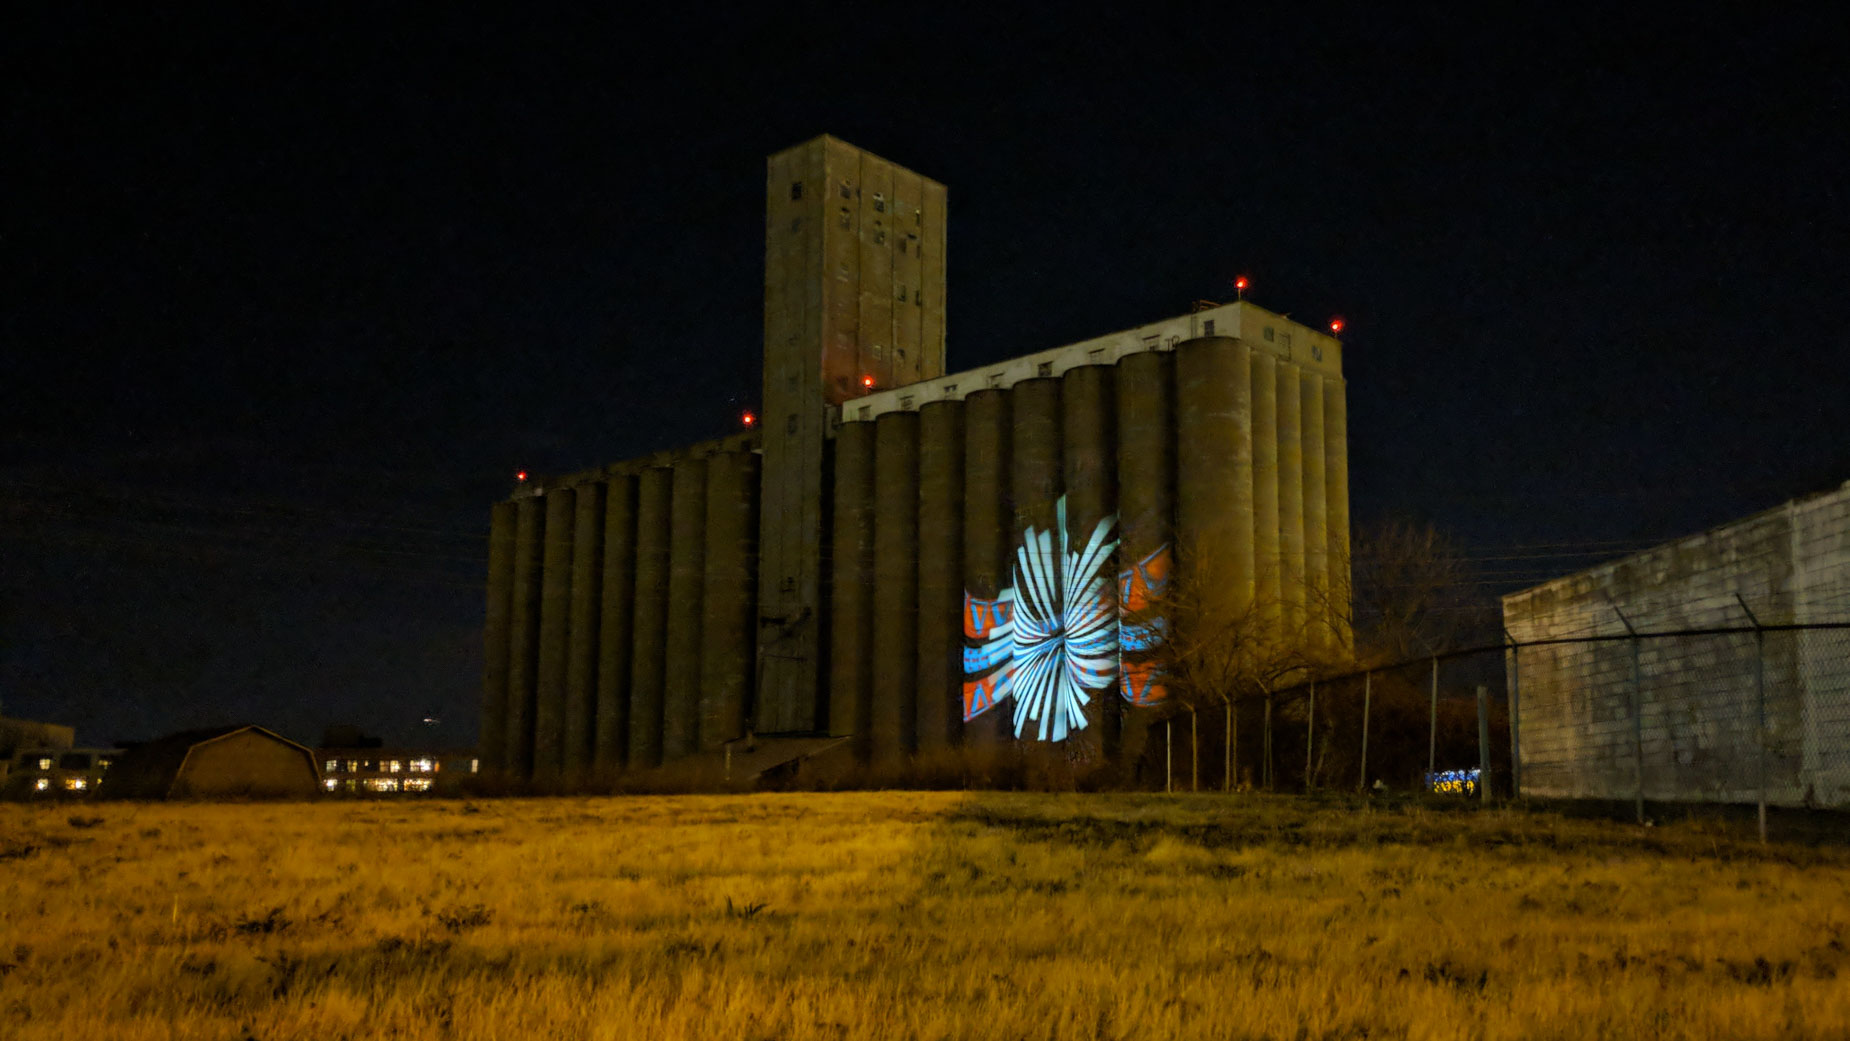 Video Projection Mapping Project Planned on Ray-Carroll Grain Silo